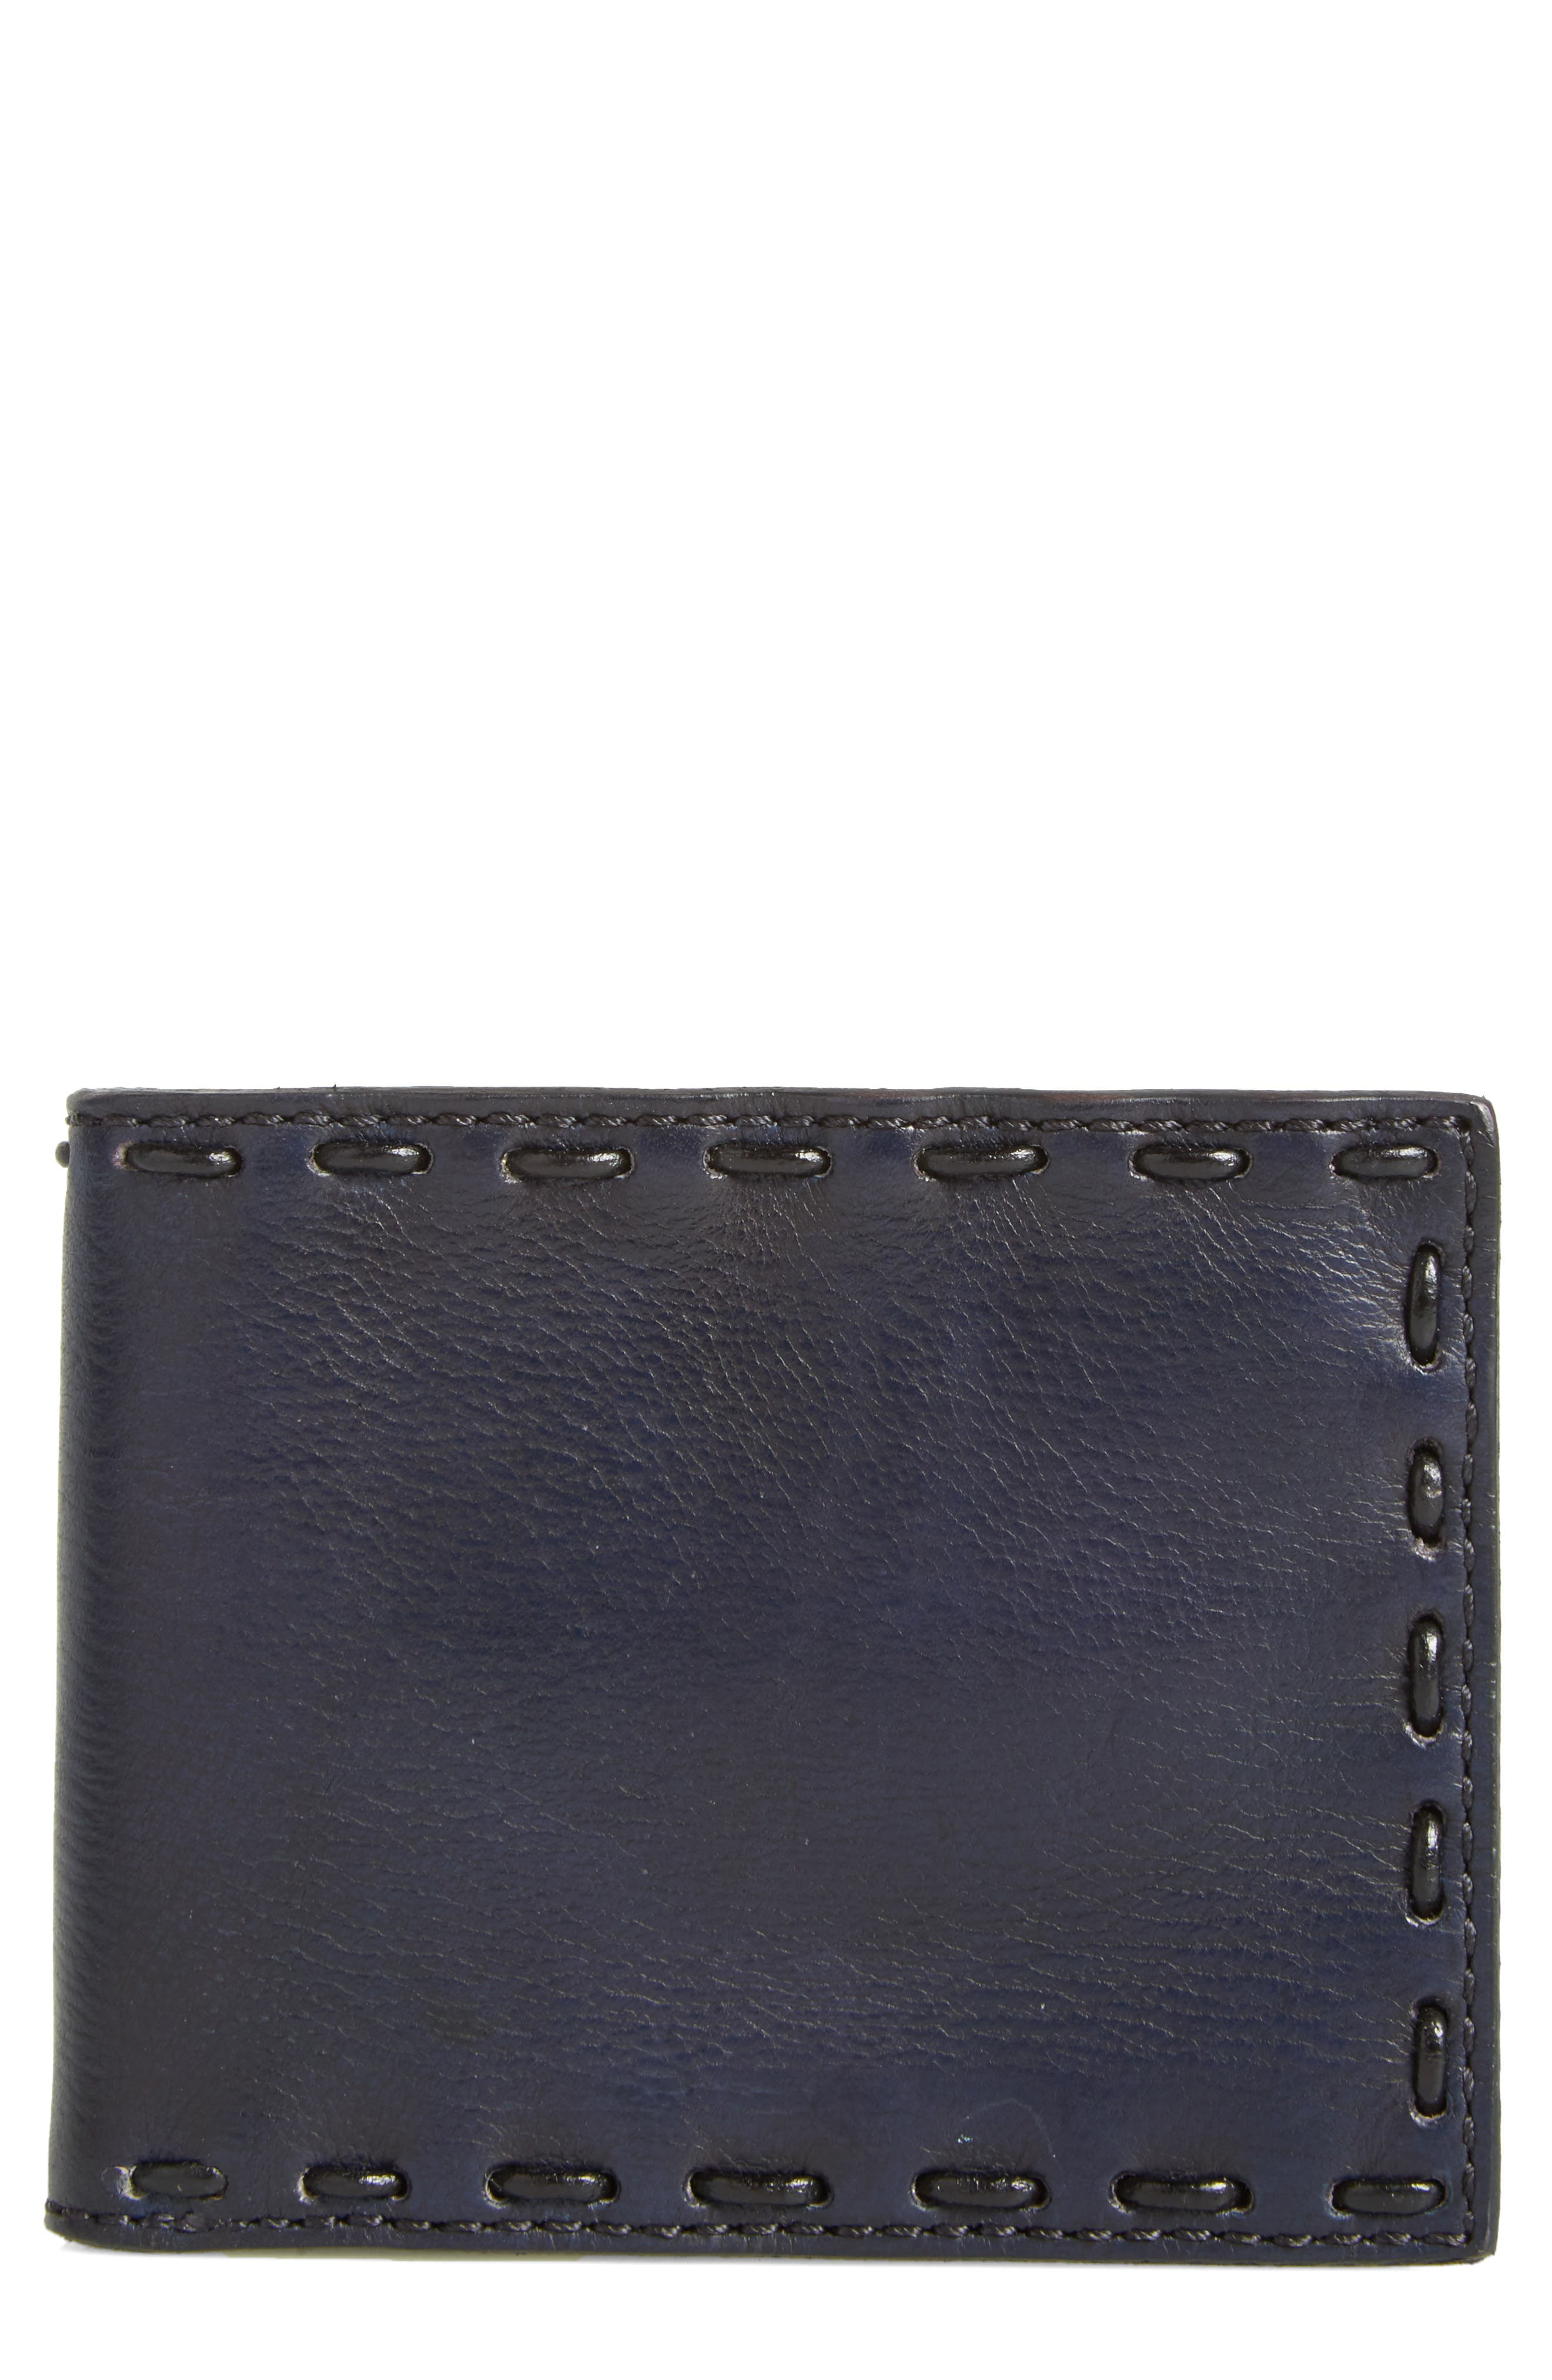 Pickstitch Leather Bifold Wallet,                         Main,                         color,